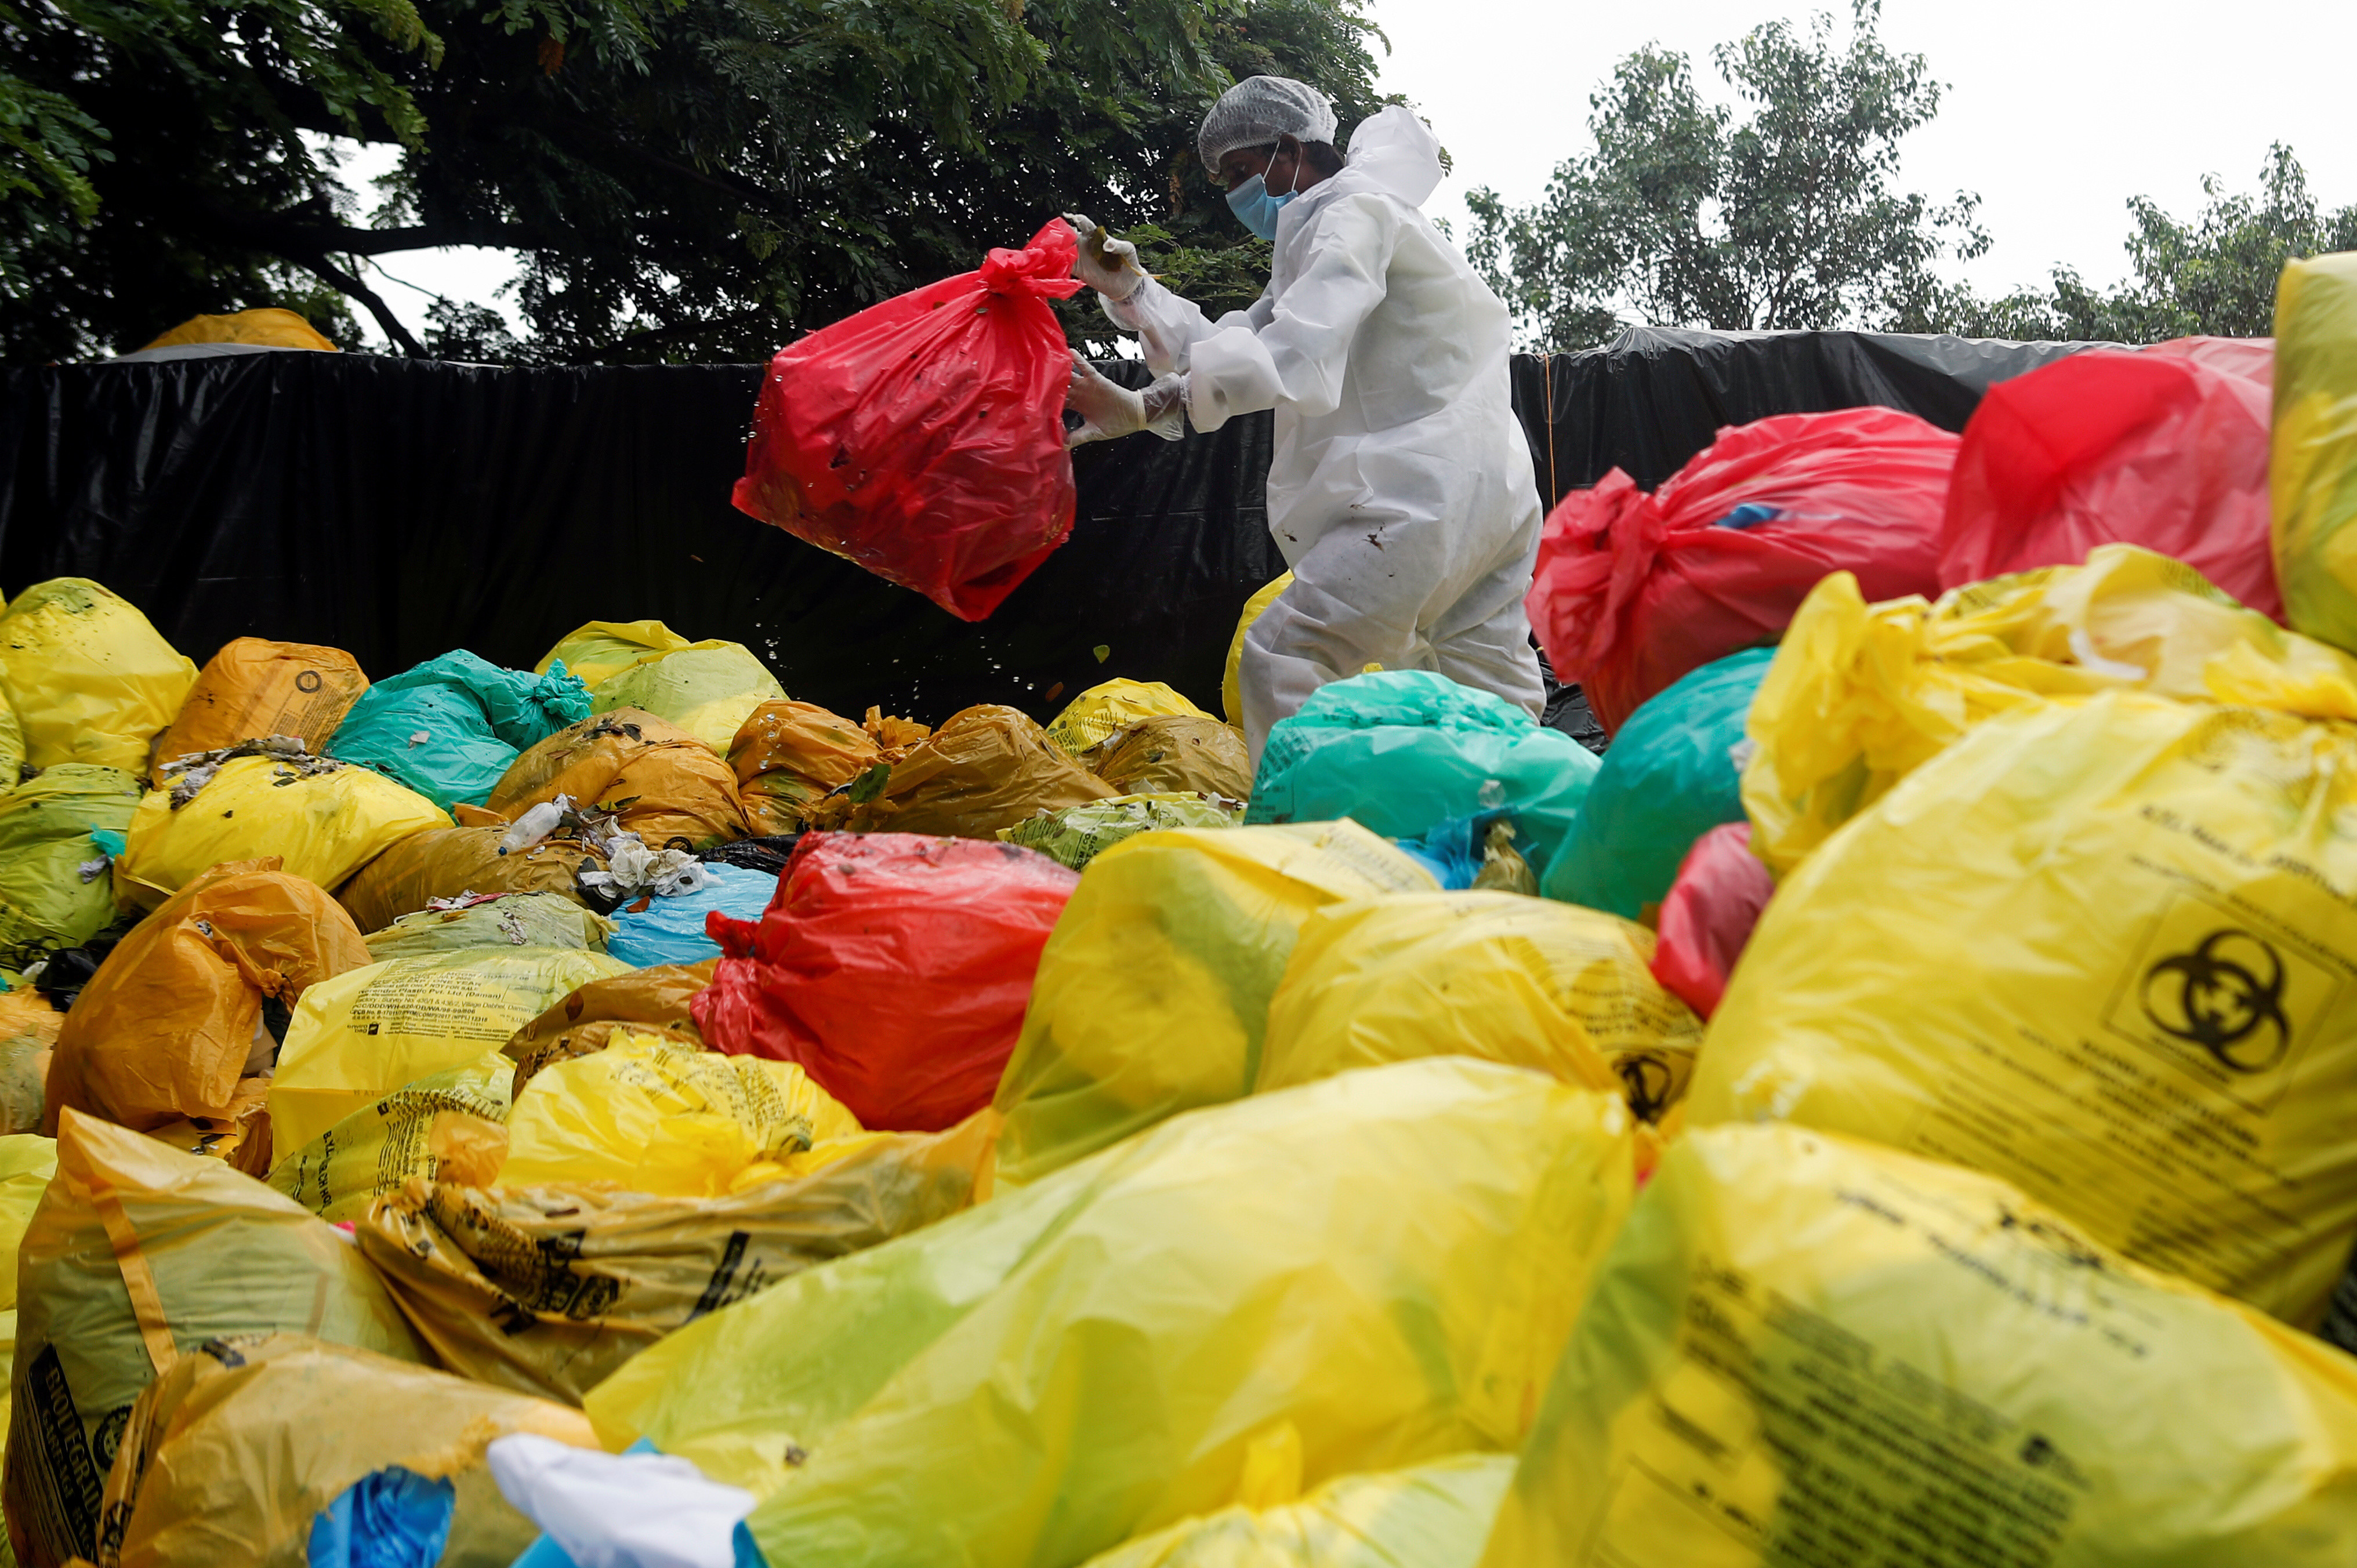 A man in personal protective equipment (PPE) clears bags filled with medical waste at a hospital, amidst the spread of the coronavirus disease.